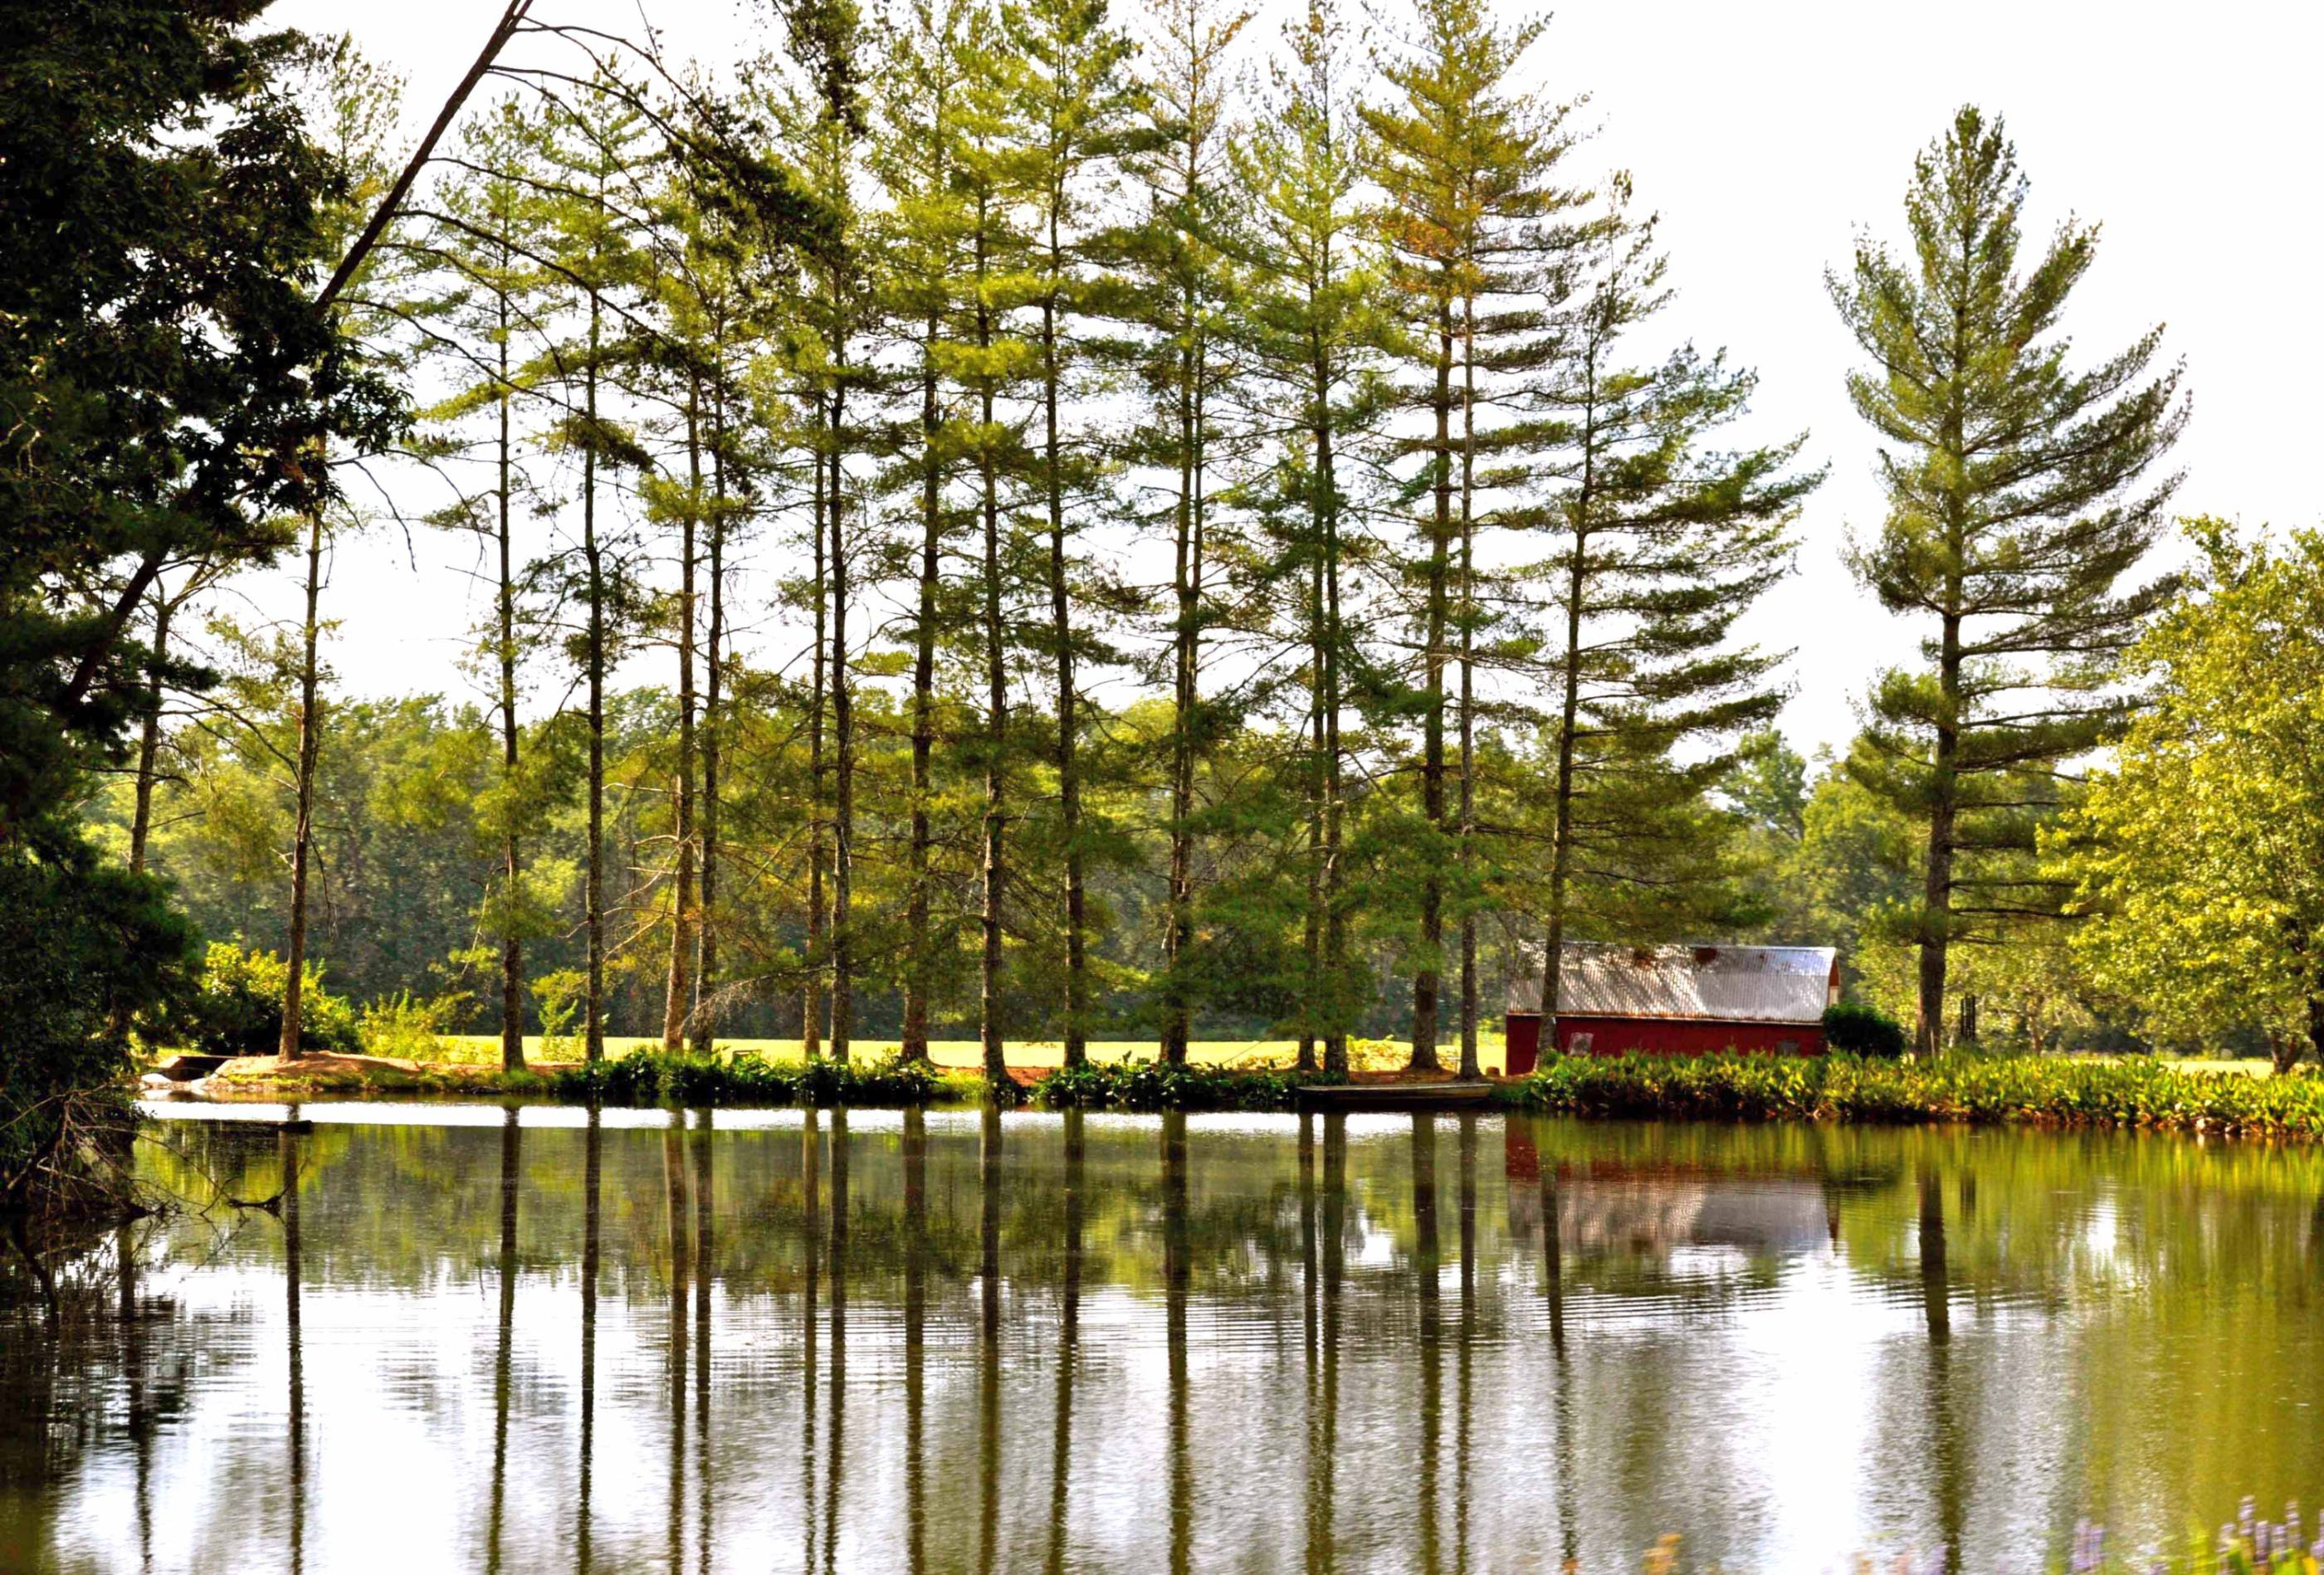 photo taken across the pond showing a red barn with tall trees around